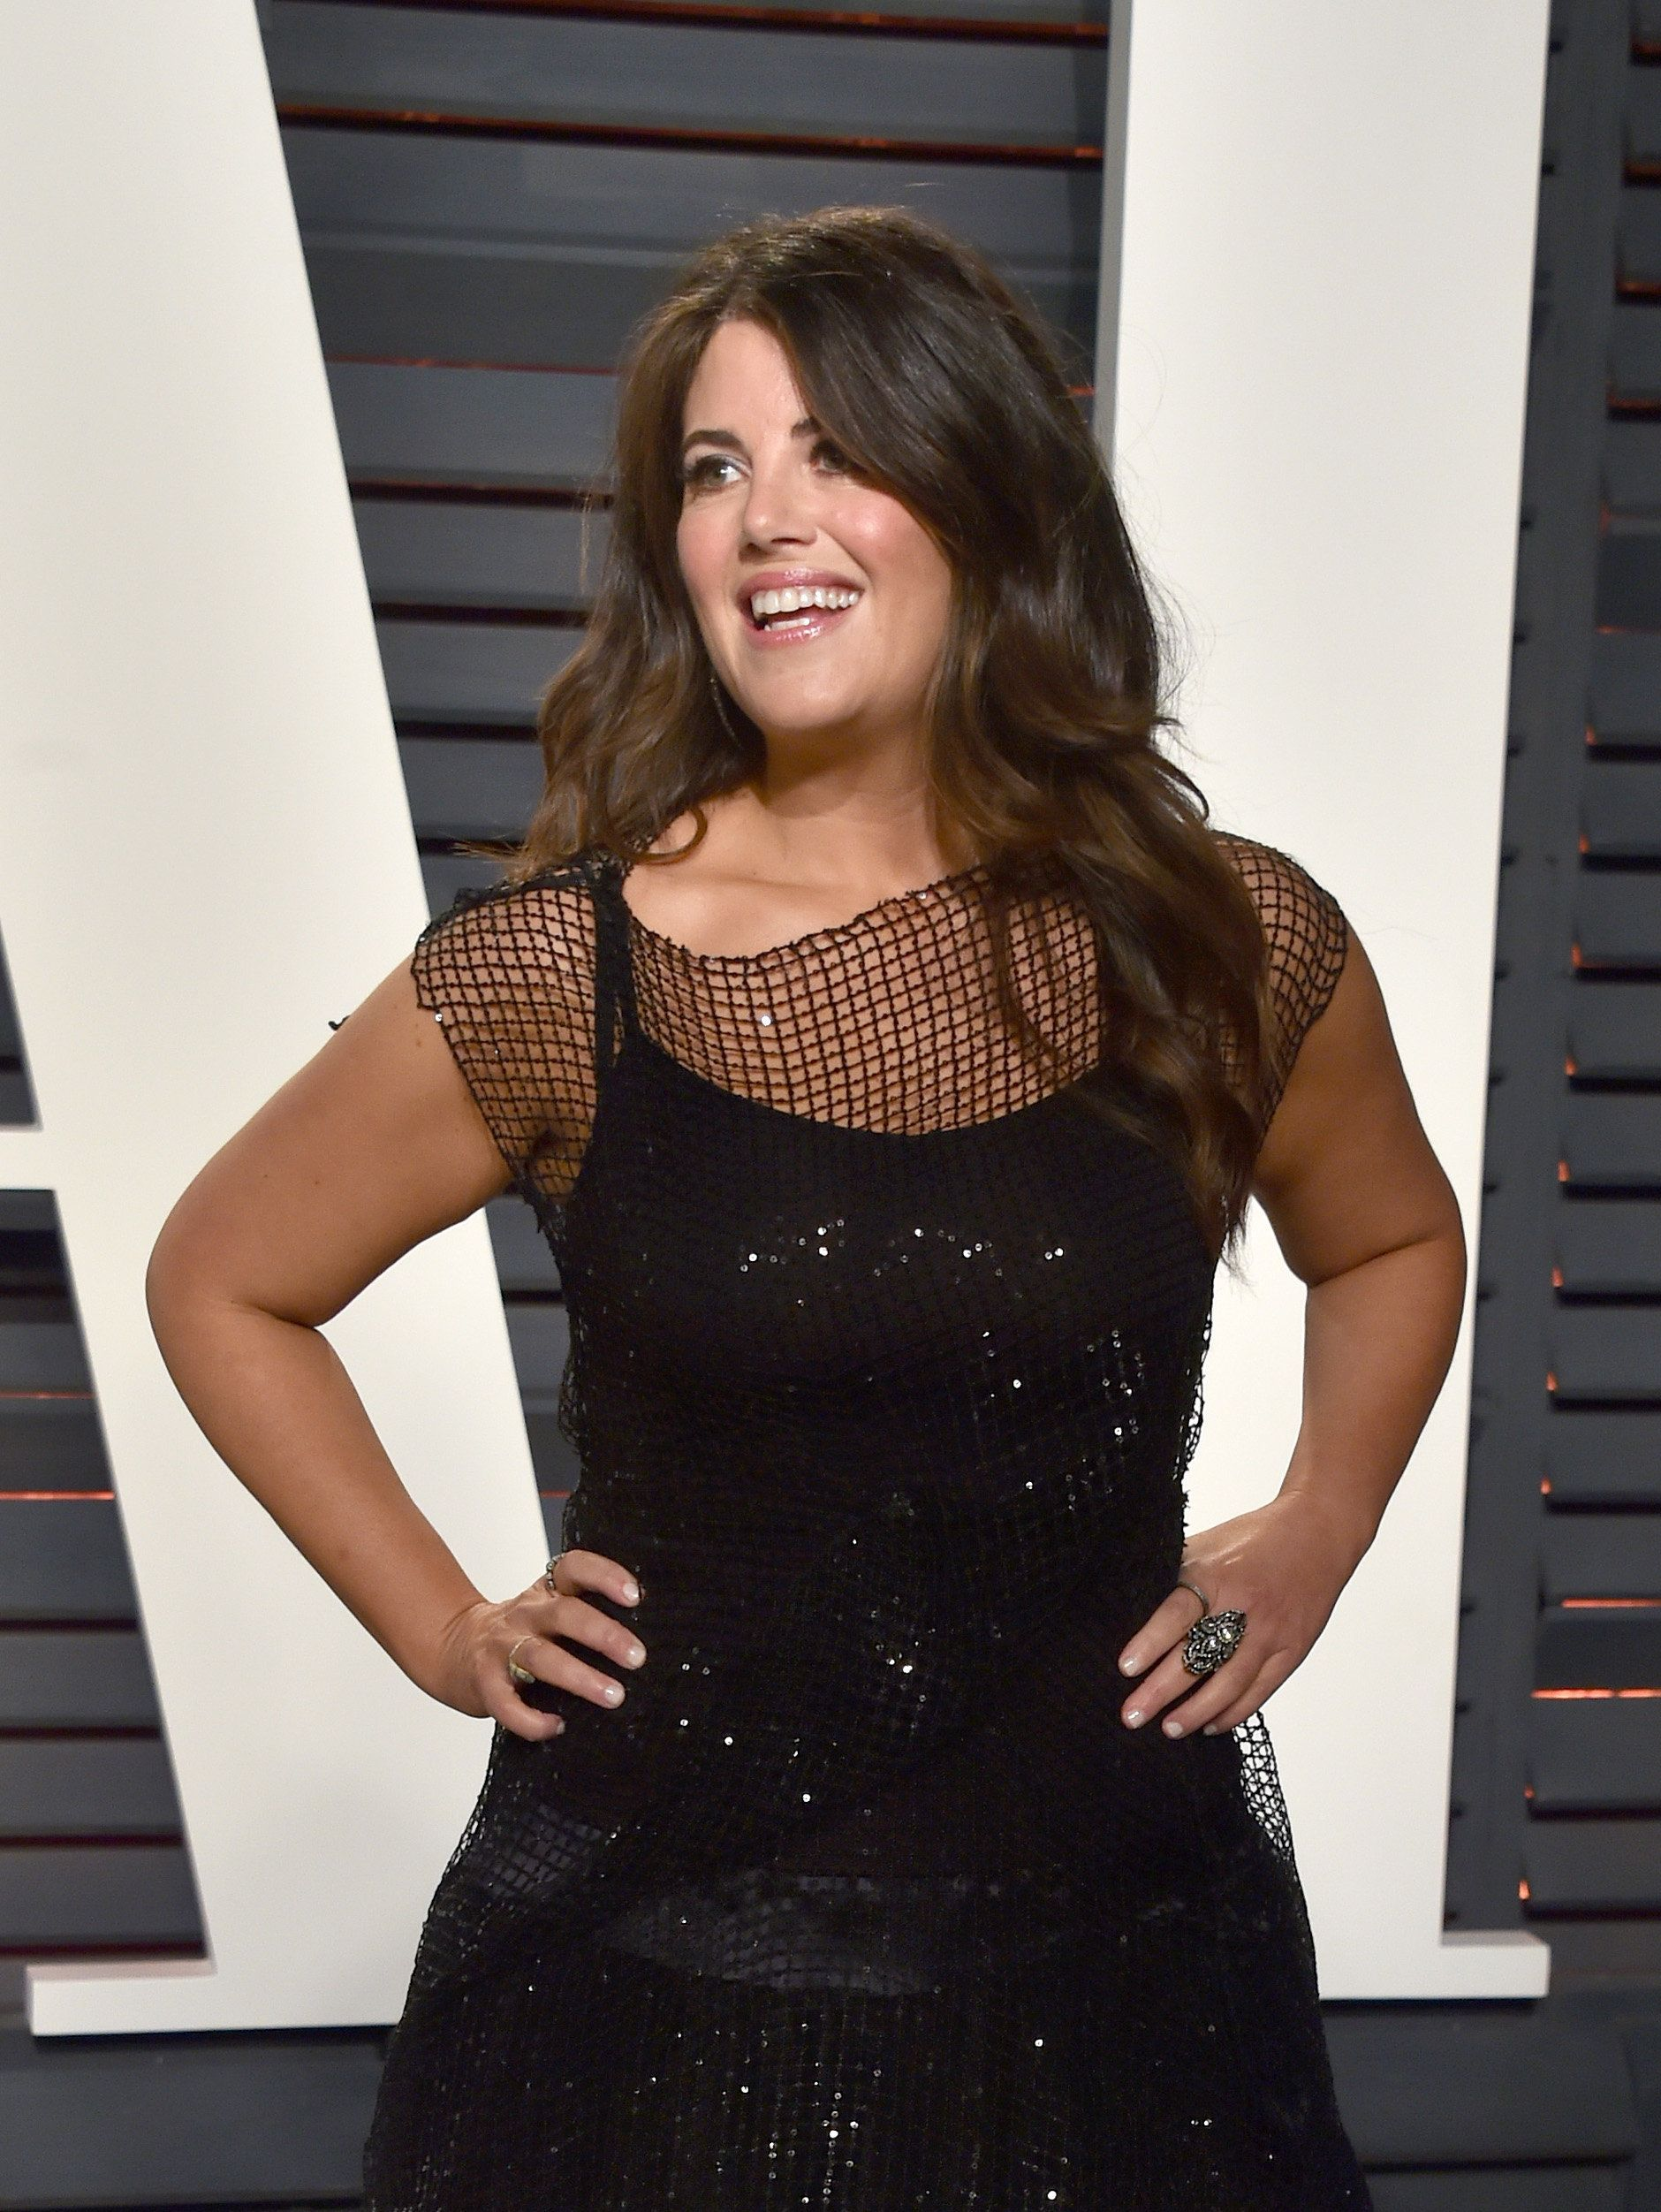 BEVERLY HILLS, CA - FEBRUARY 26:  Television personality Monica Lewinsky attends the 2017 Vanity Fair Oscar Party hosted by Graydon Carter at Wallis Annenberg Center for the Performing Arts on February 26, 2017 in Beverly Hills, California.  (Photo by Alberto E. Rodriguez/WireImage)